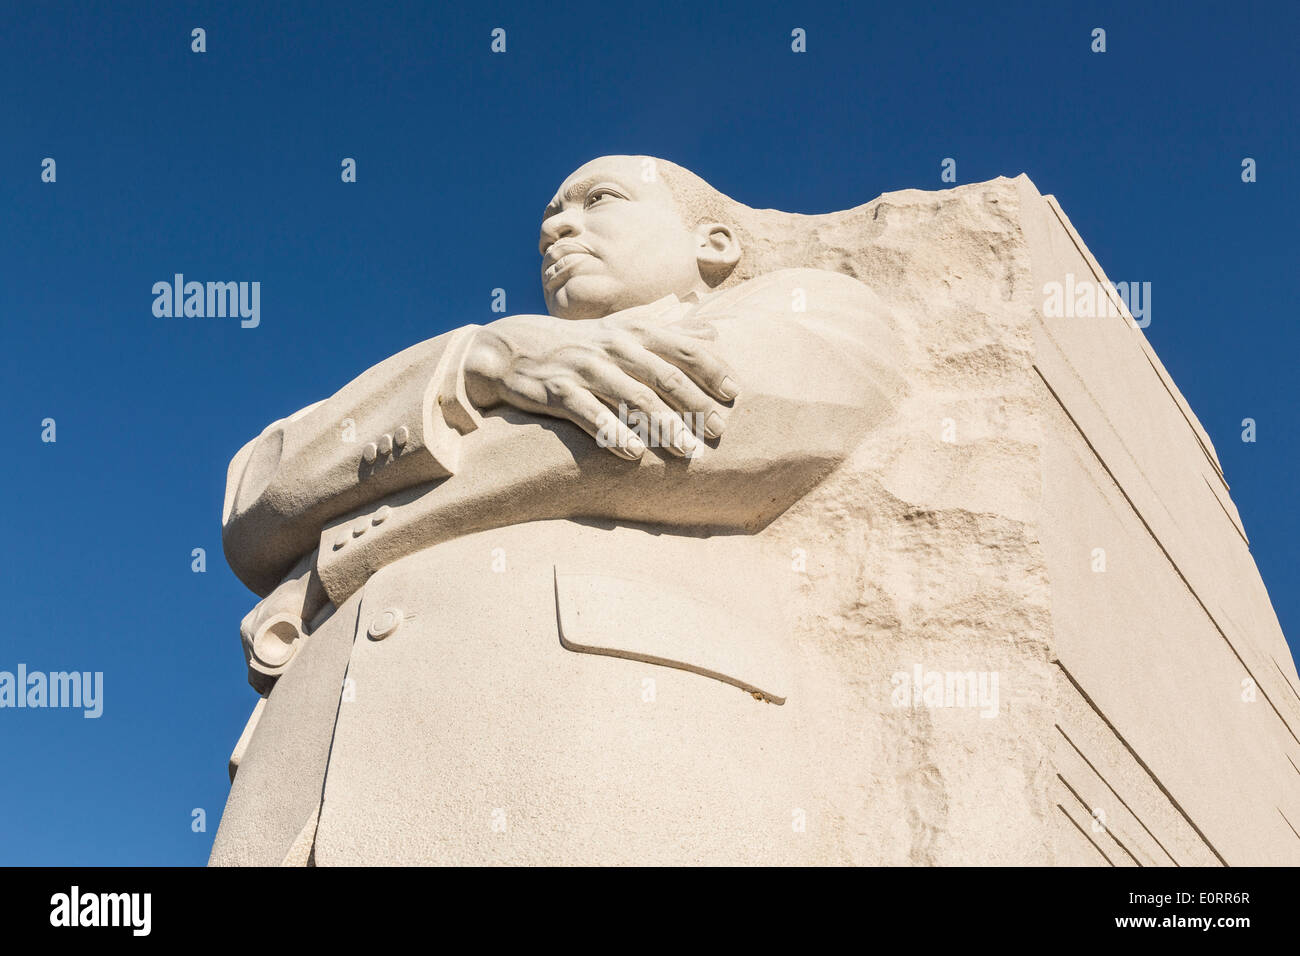 Martin Luther King Jr Memorial, Washington DC, USA - Stock Image